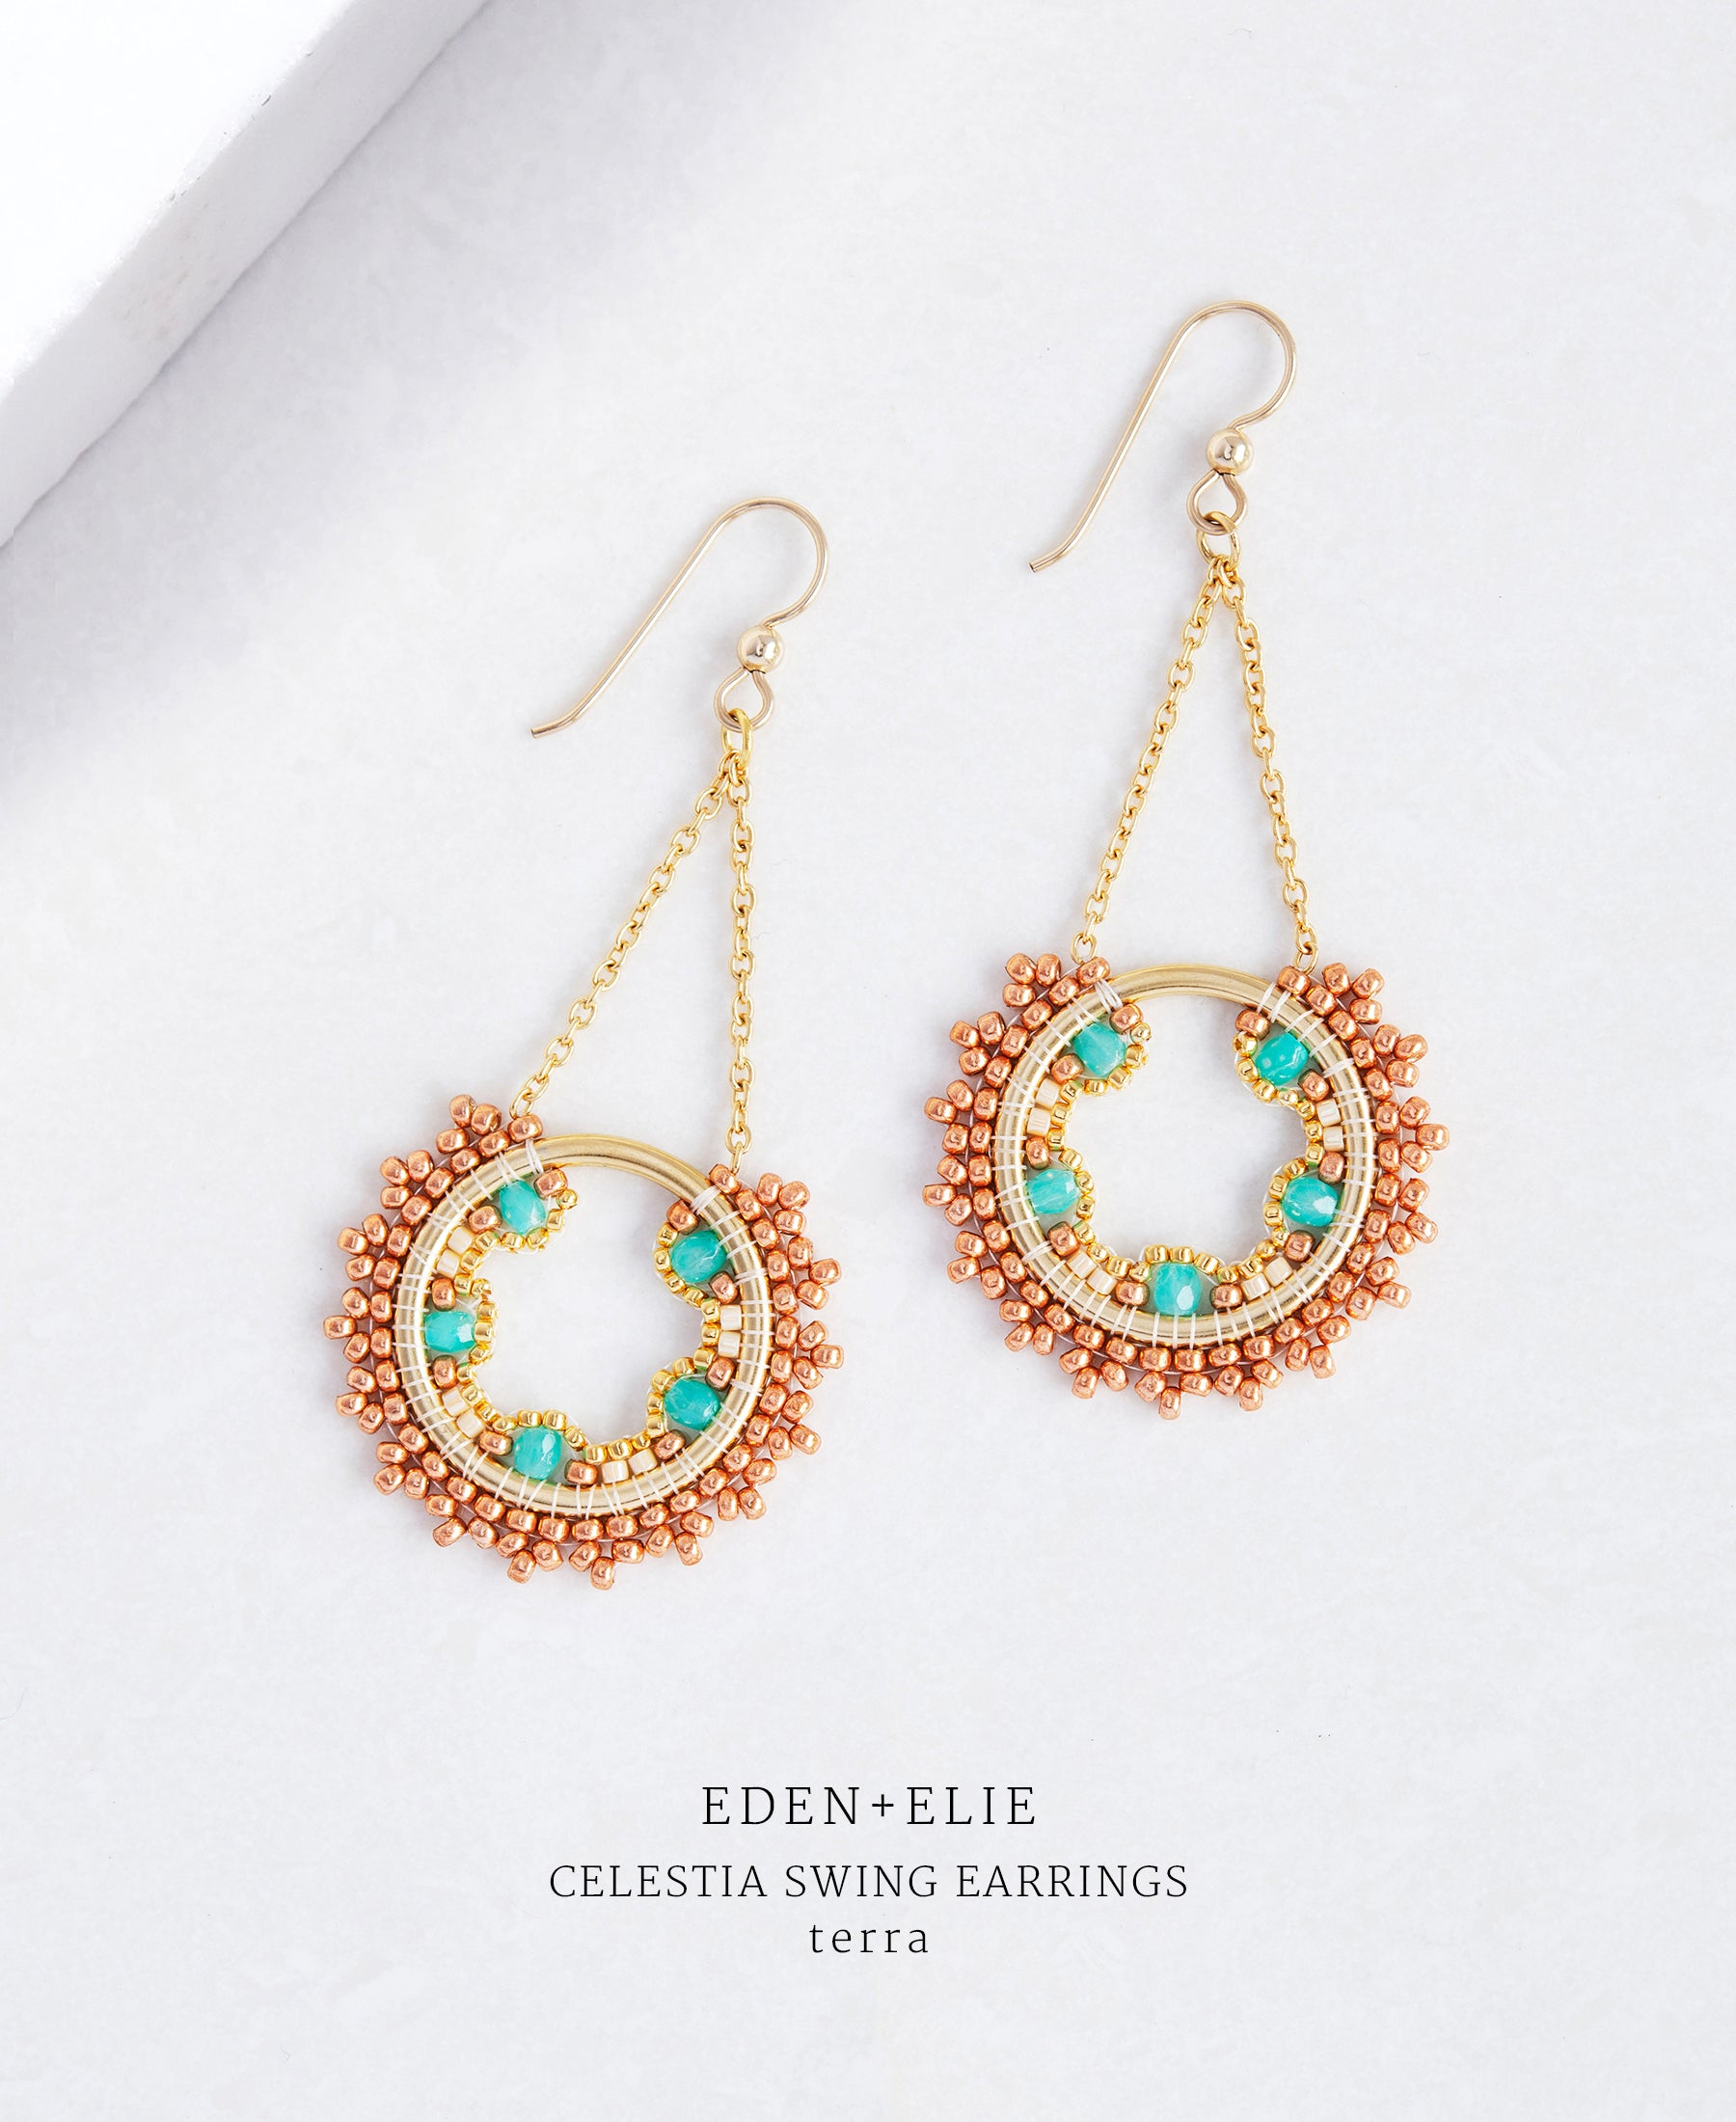 EDEN + ELIE Celestia swing earrings - terra green